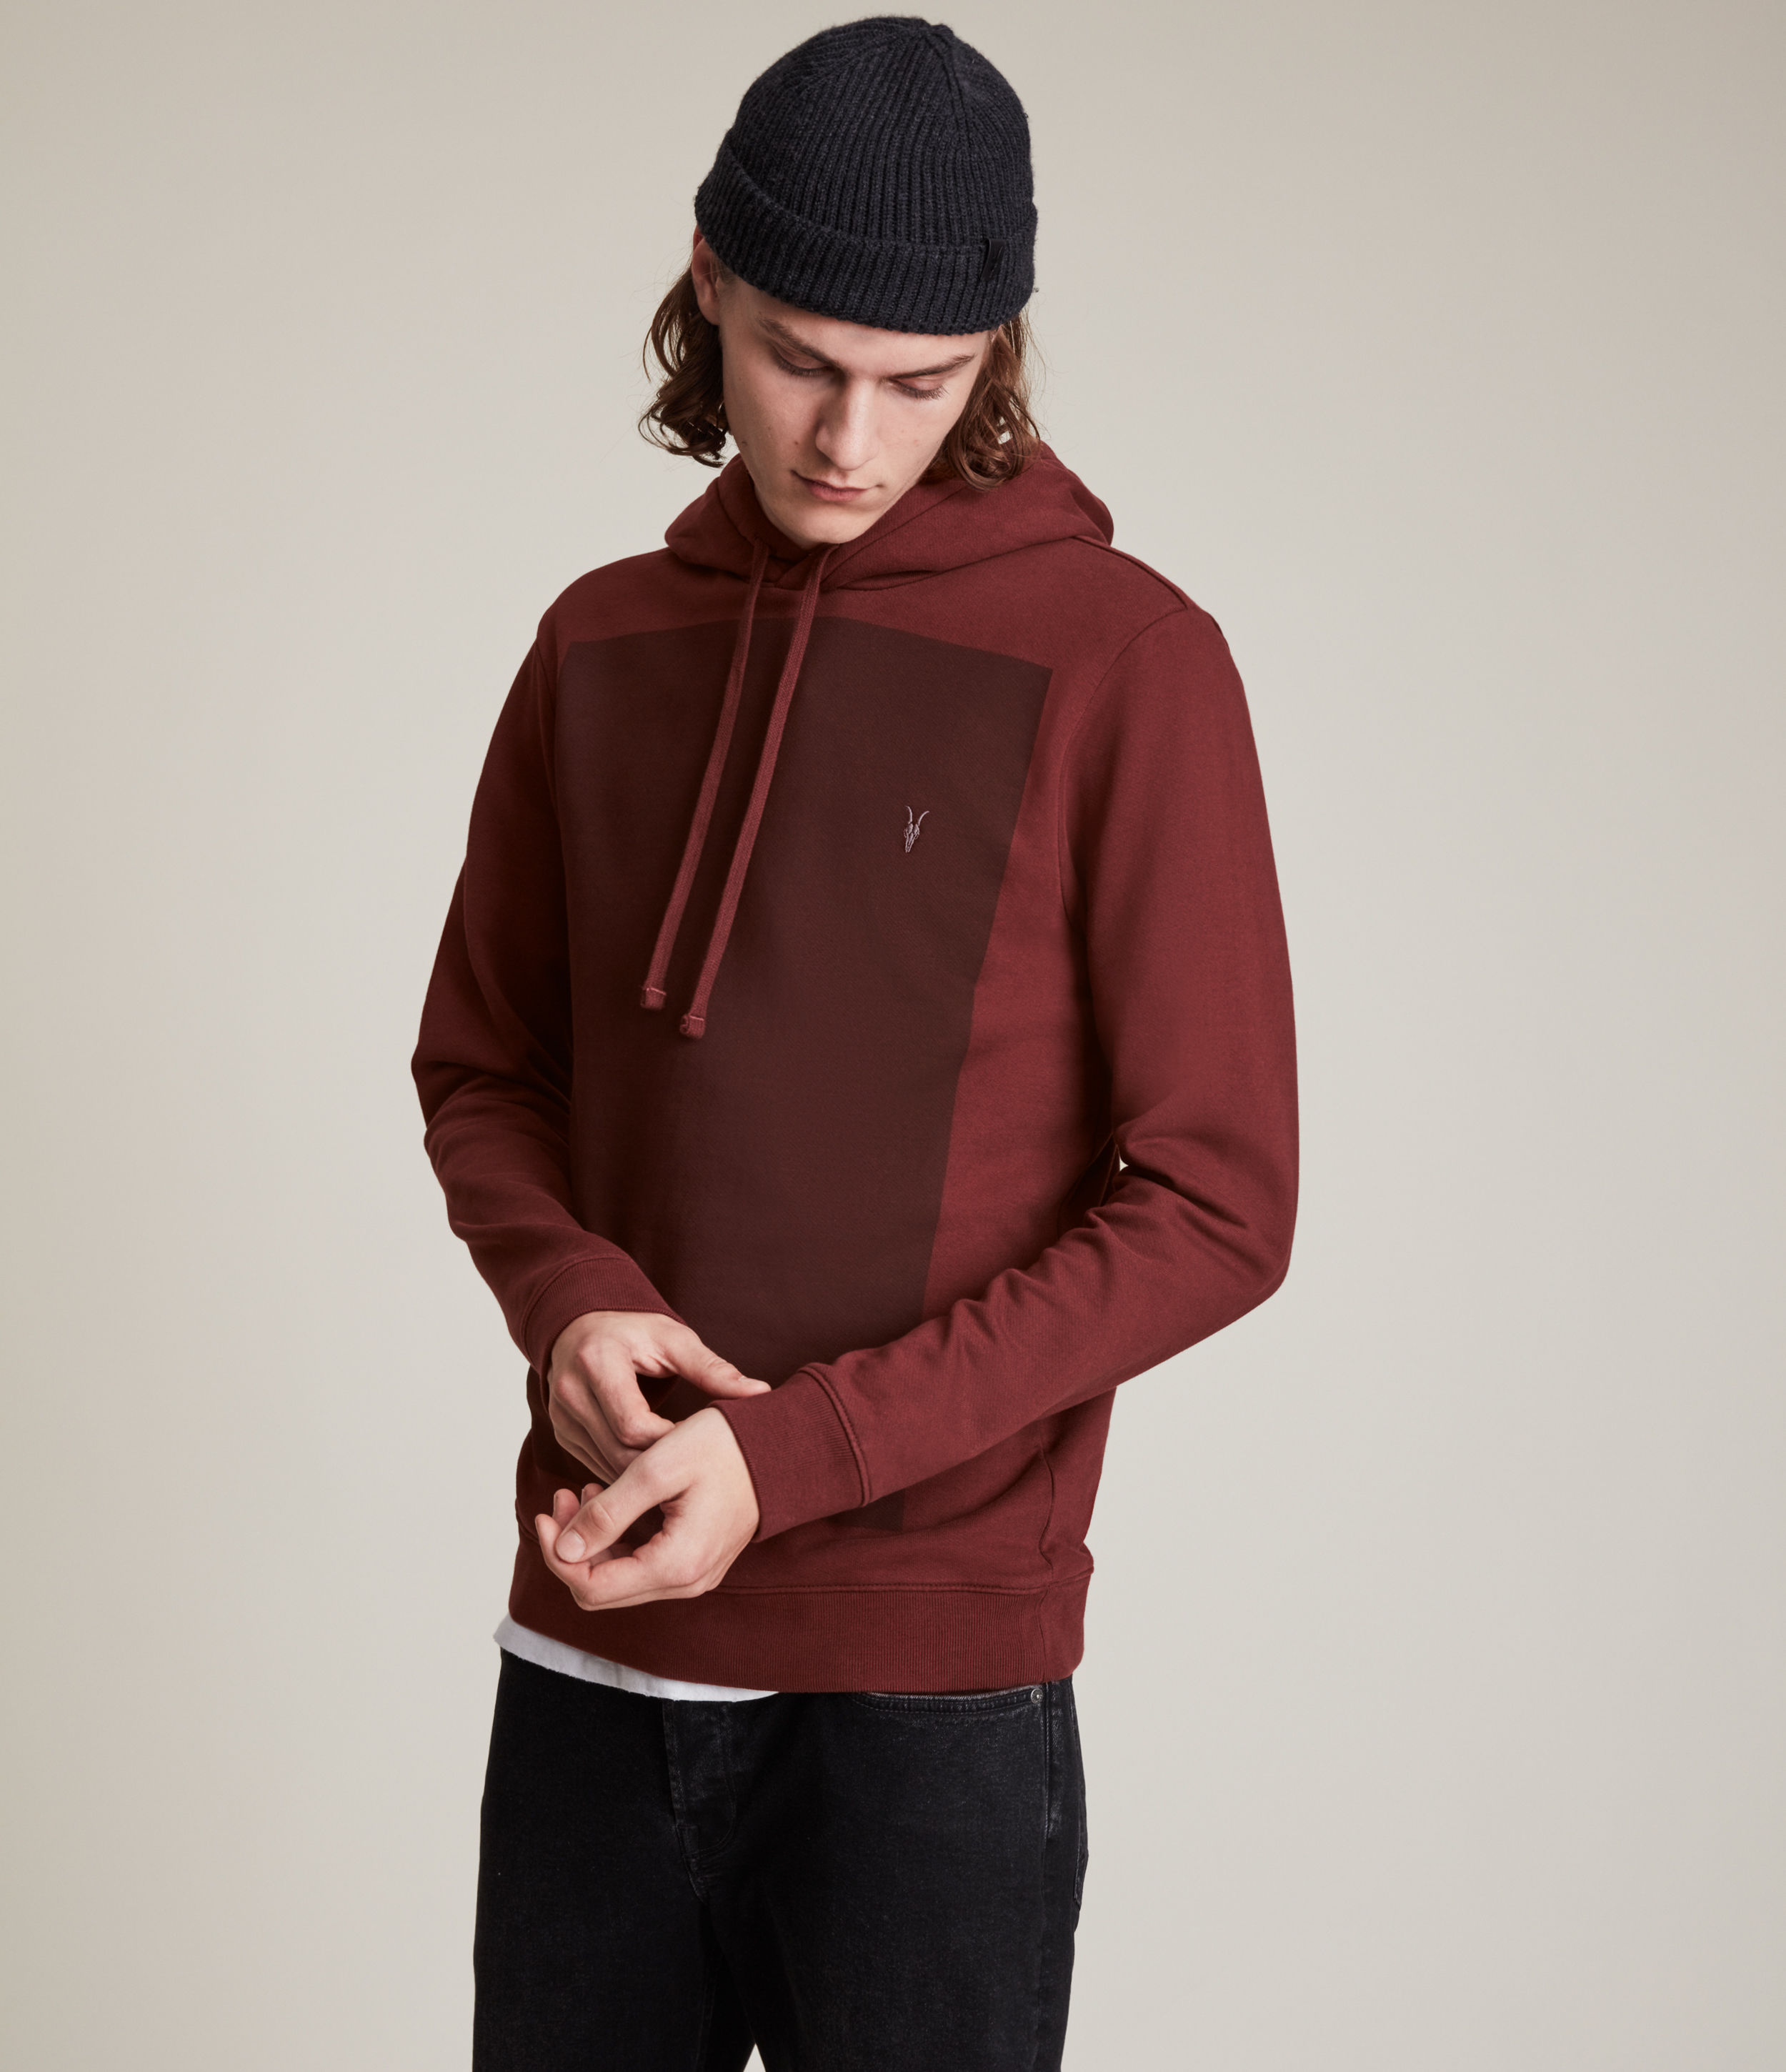 AllSaints Men's Lobke Pullover Hoodie, Damson Red, Size: XS